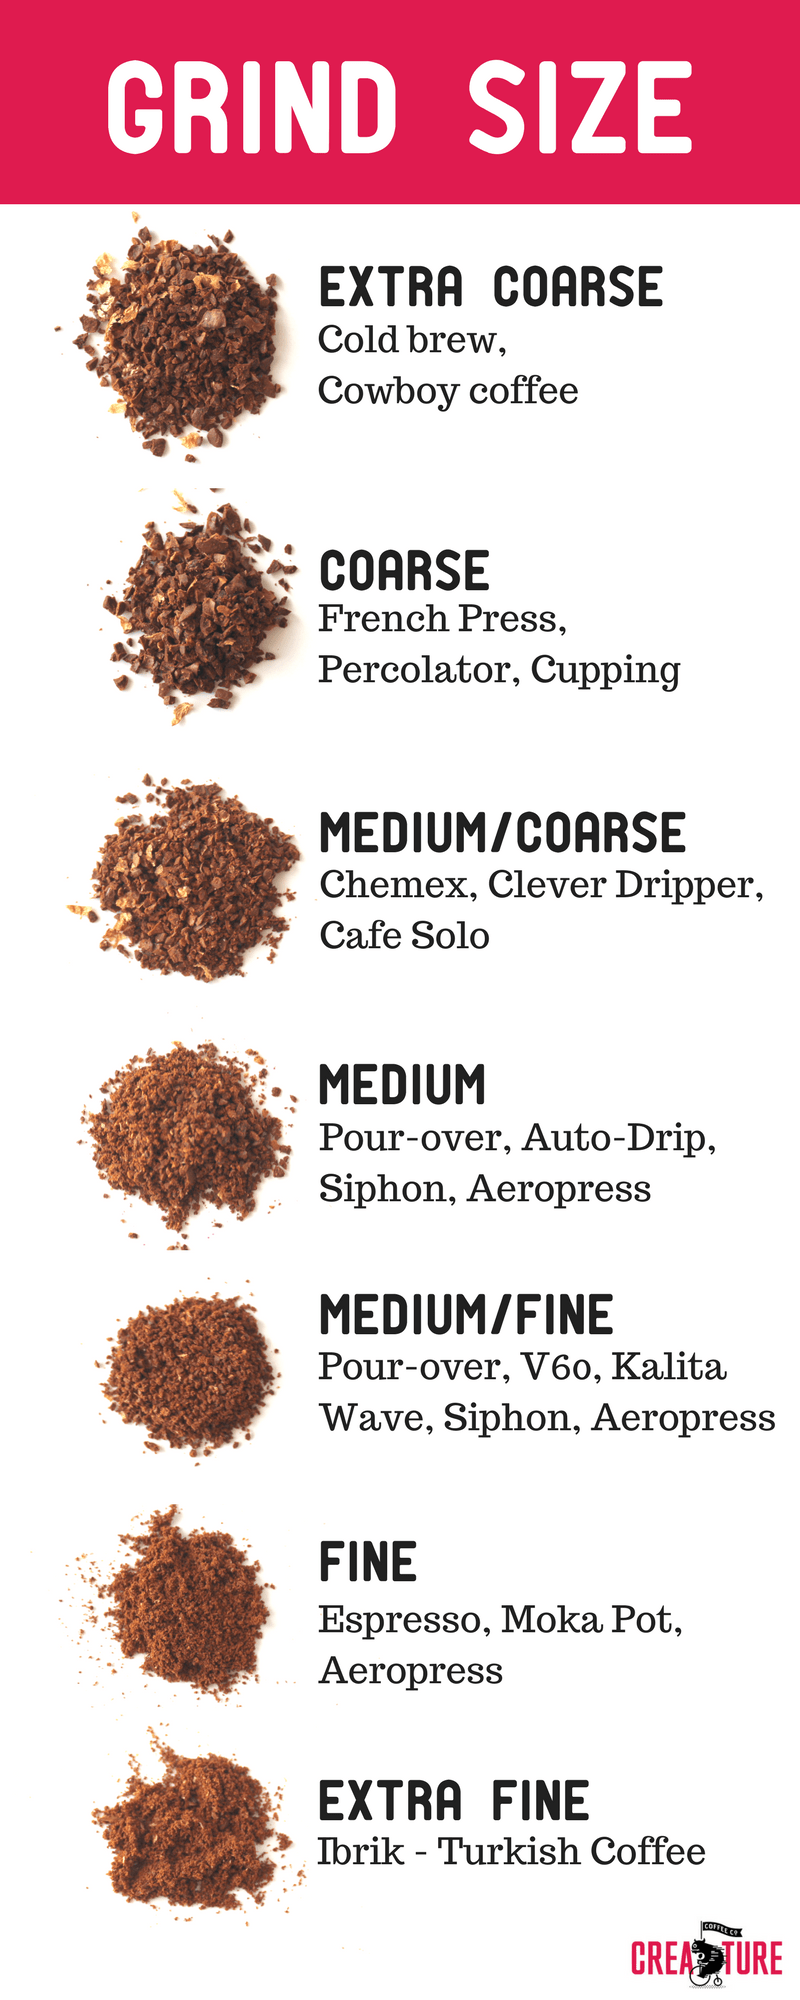 GRIND SIZE CHART Creature Coffee Subscription Best Grind